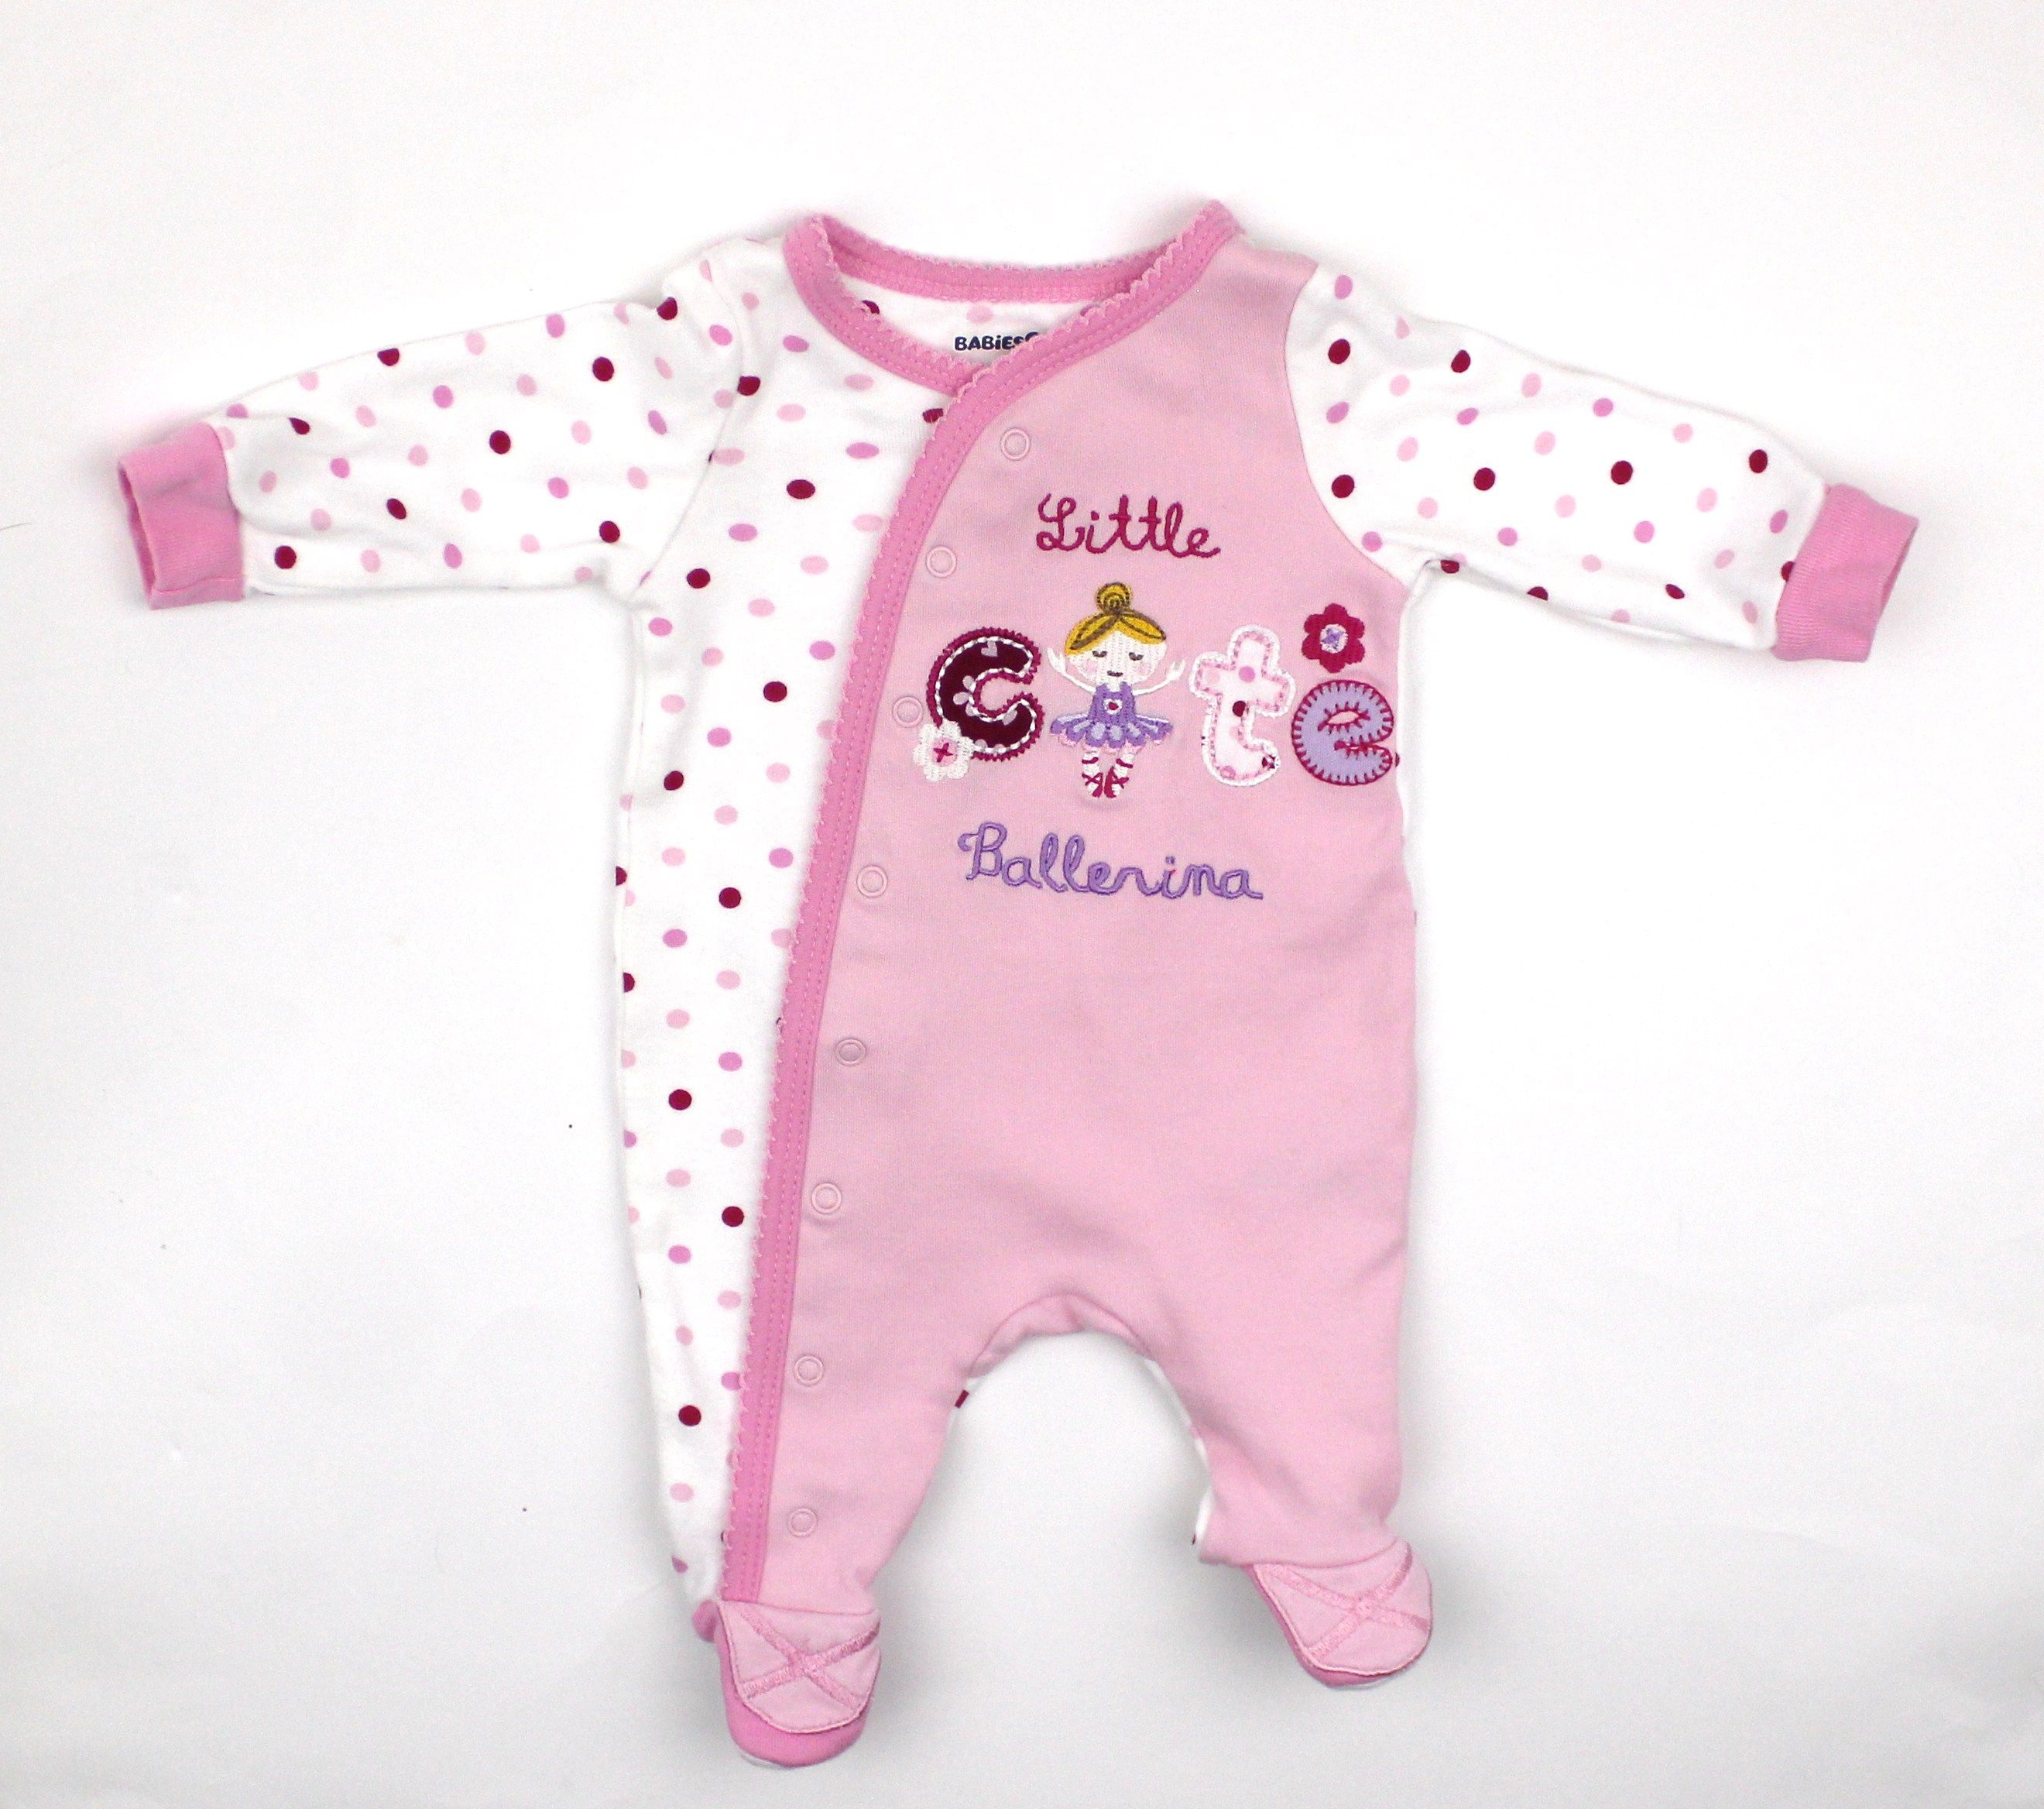 92d395a3be3 Newborn Baby Girl Pink Sleeper with Ballerina only  3.50 in Gently Used  Baby Clothes Resale Store May Bug Treasures